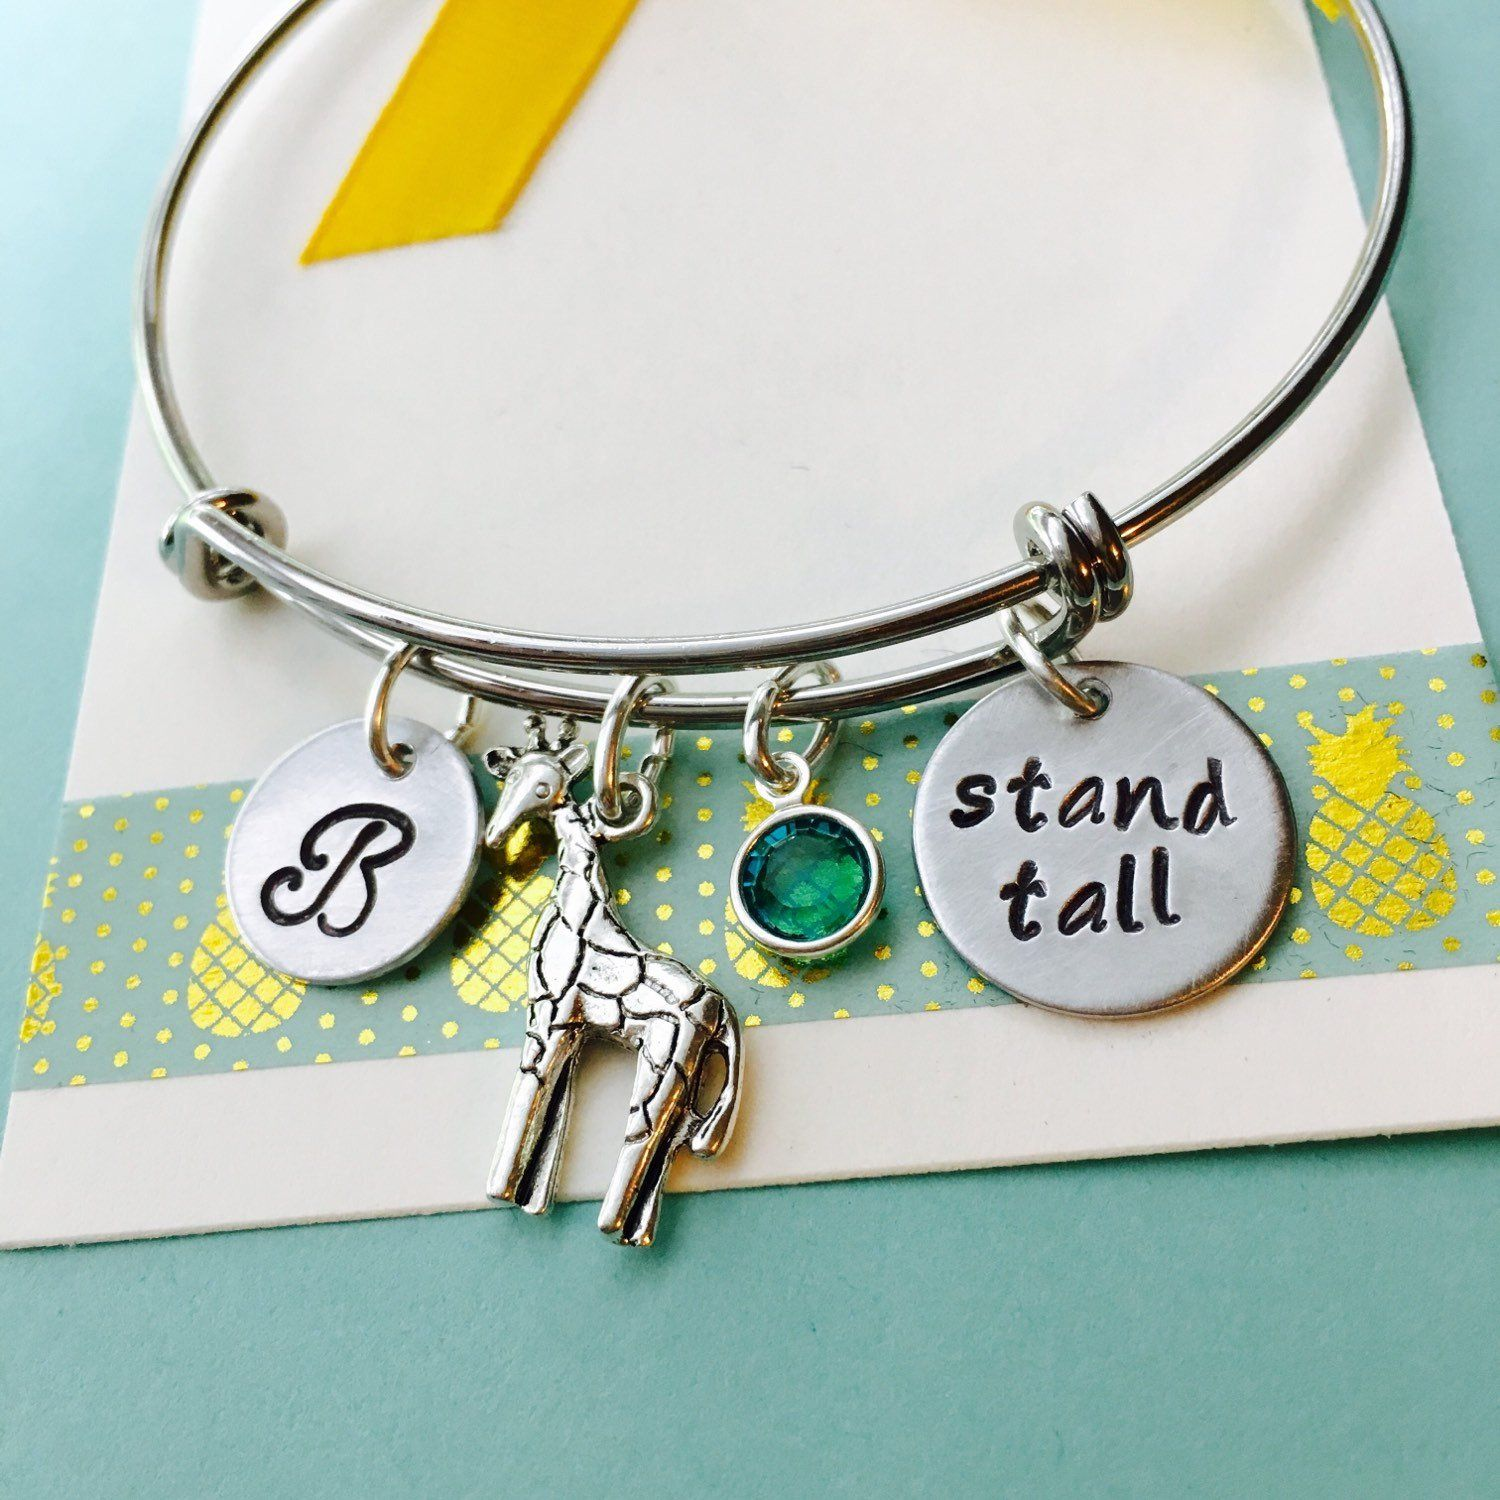 Giraffe Bracelet Jewelry Stand Tall Be Diffe Adjule Charm Personalized Initial